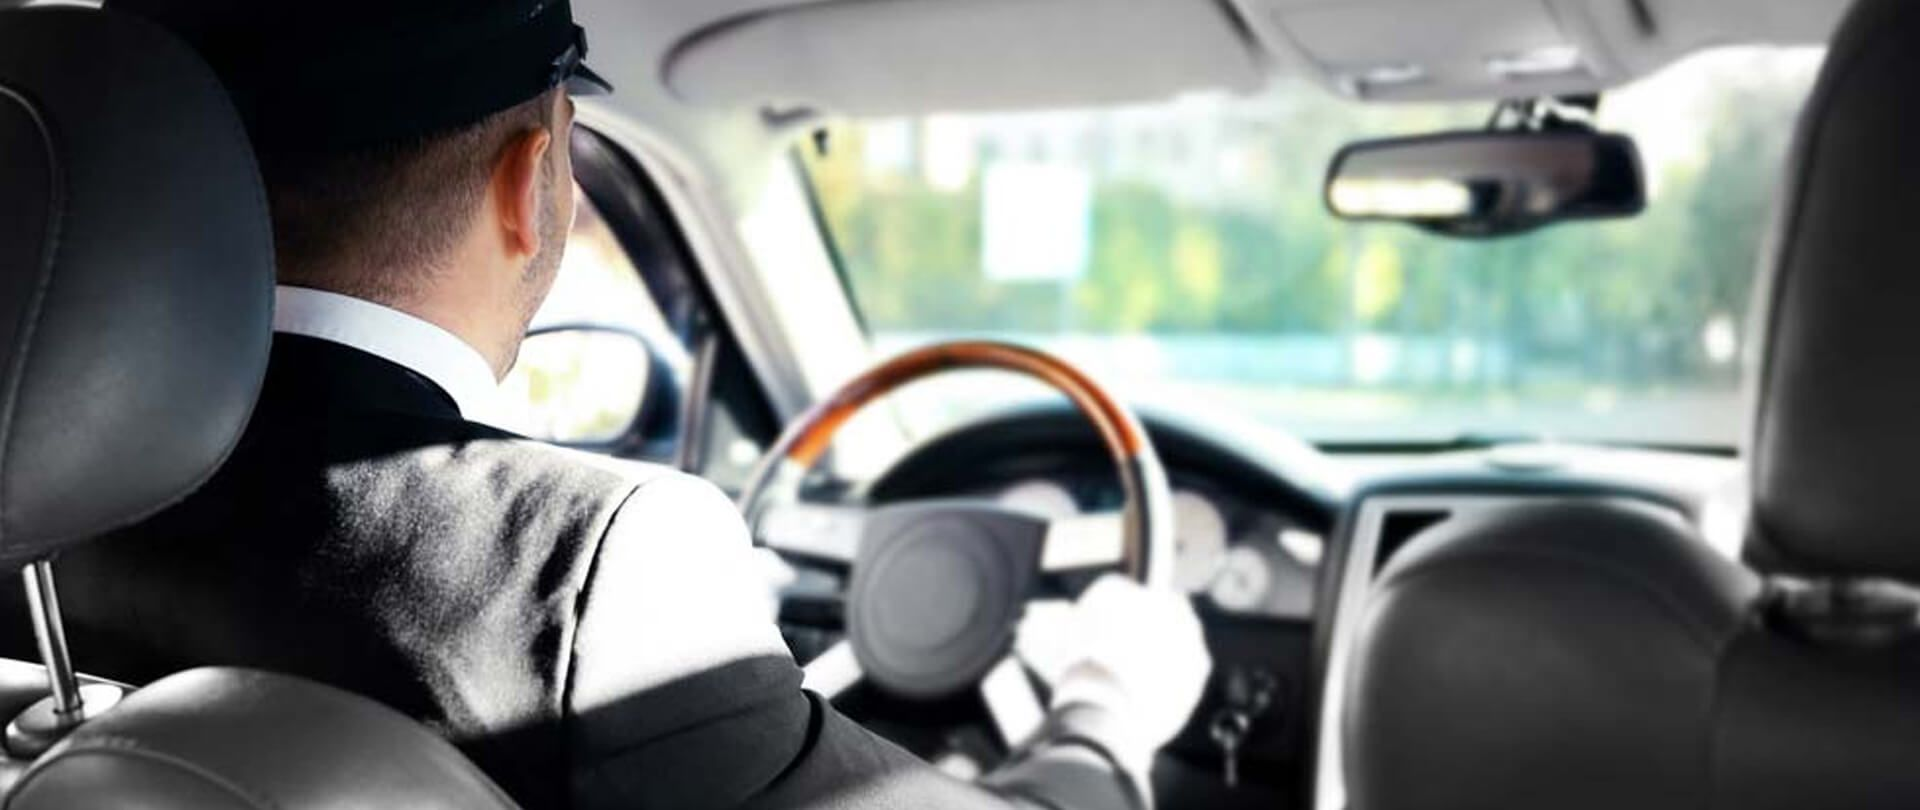 Find the best car rental offers for personal and corporate